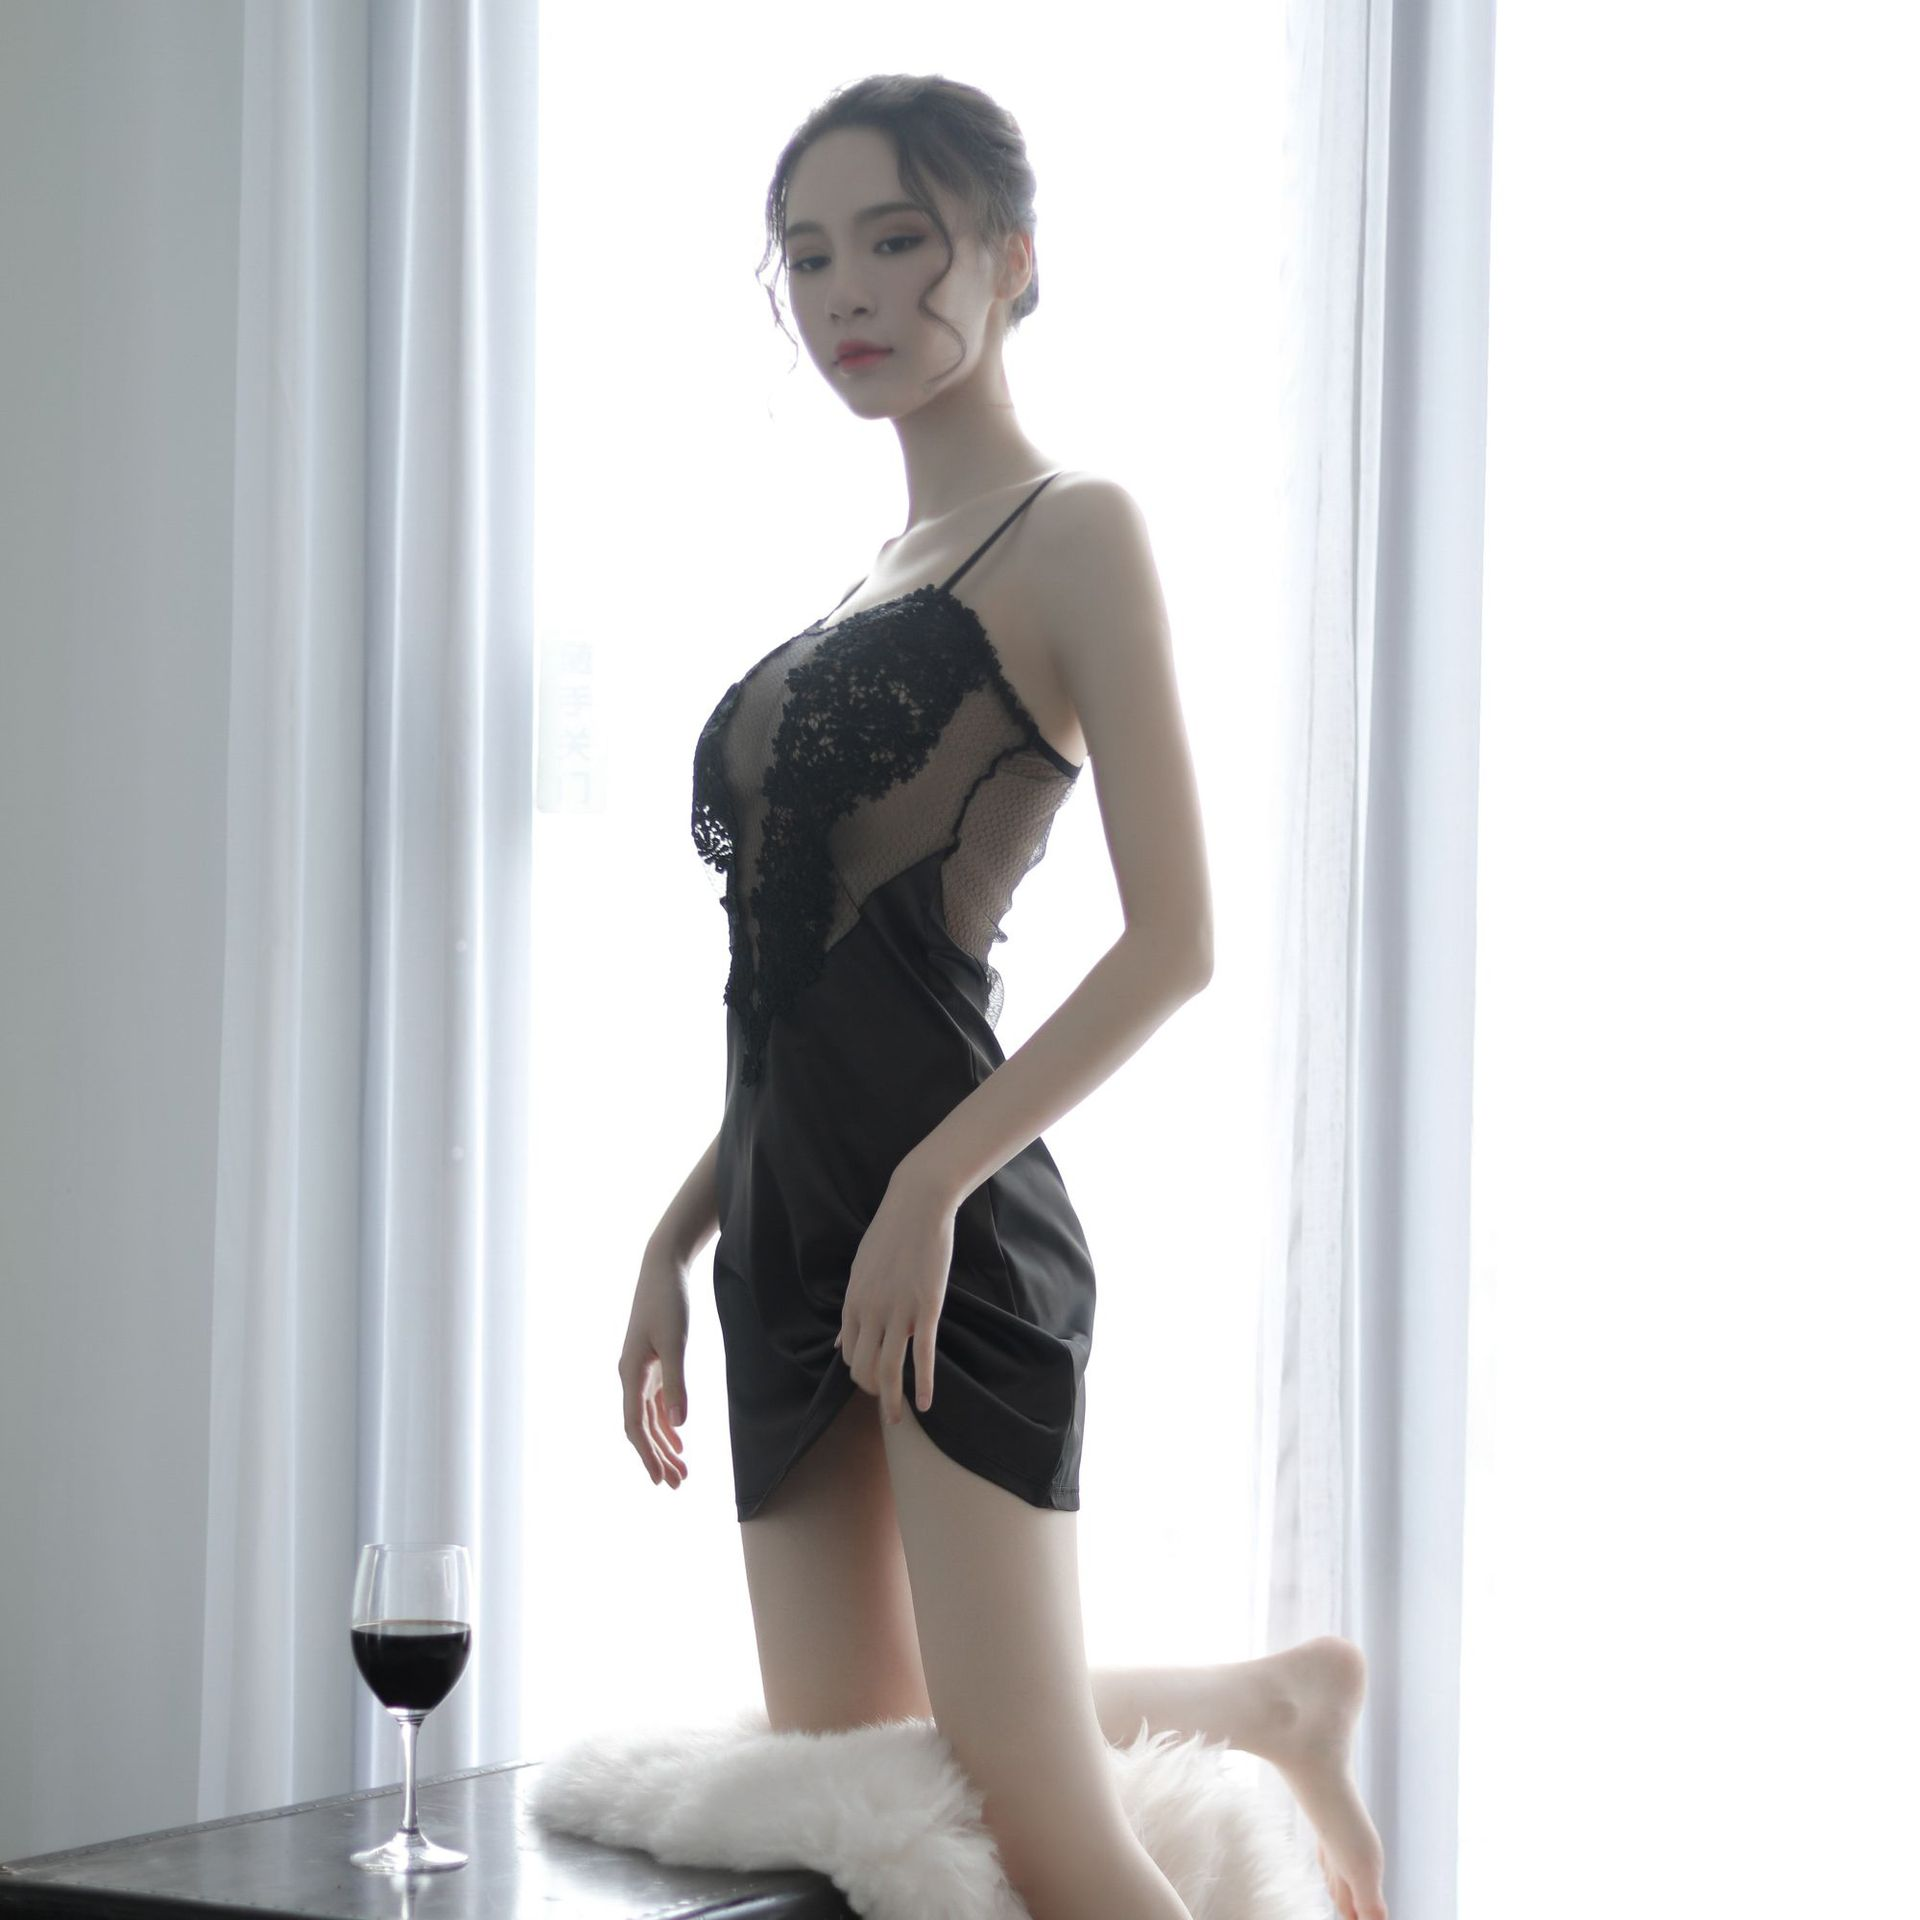 Kaguster Sexy sleepwear sik silk mujer dress Nightgown Nuisette dresses Women nightwear SEXI underdress satin Top Lace shirt in Dresses from Women 39 s Clothing